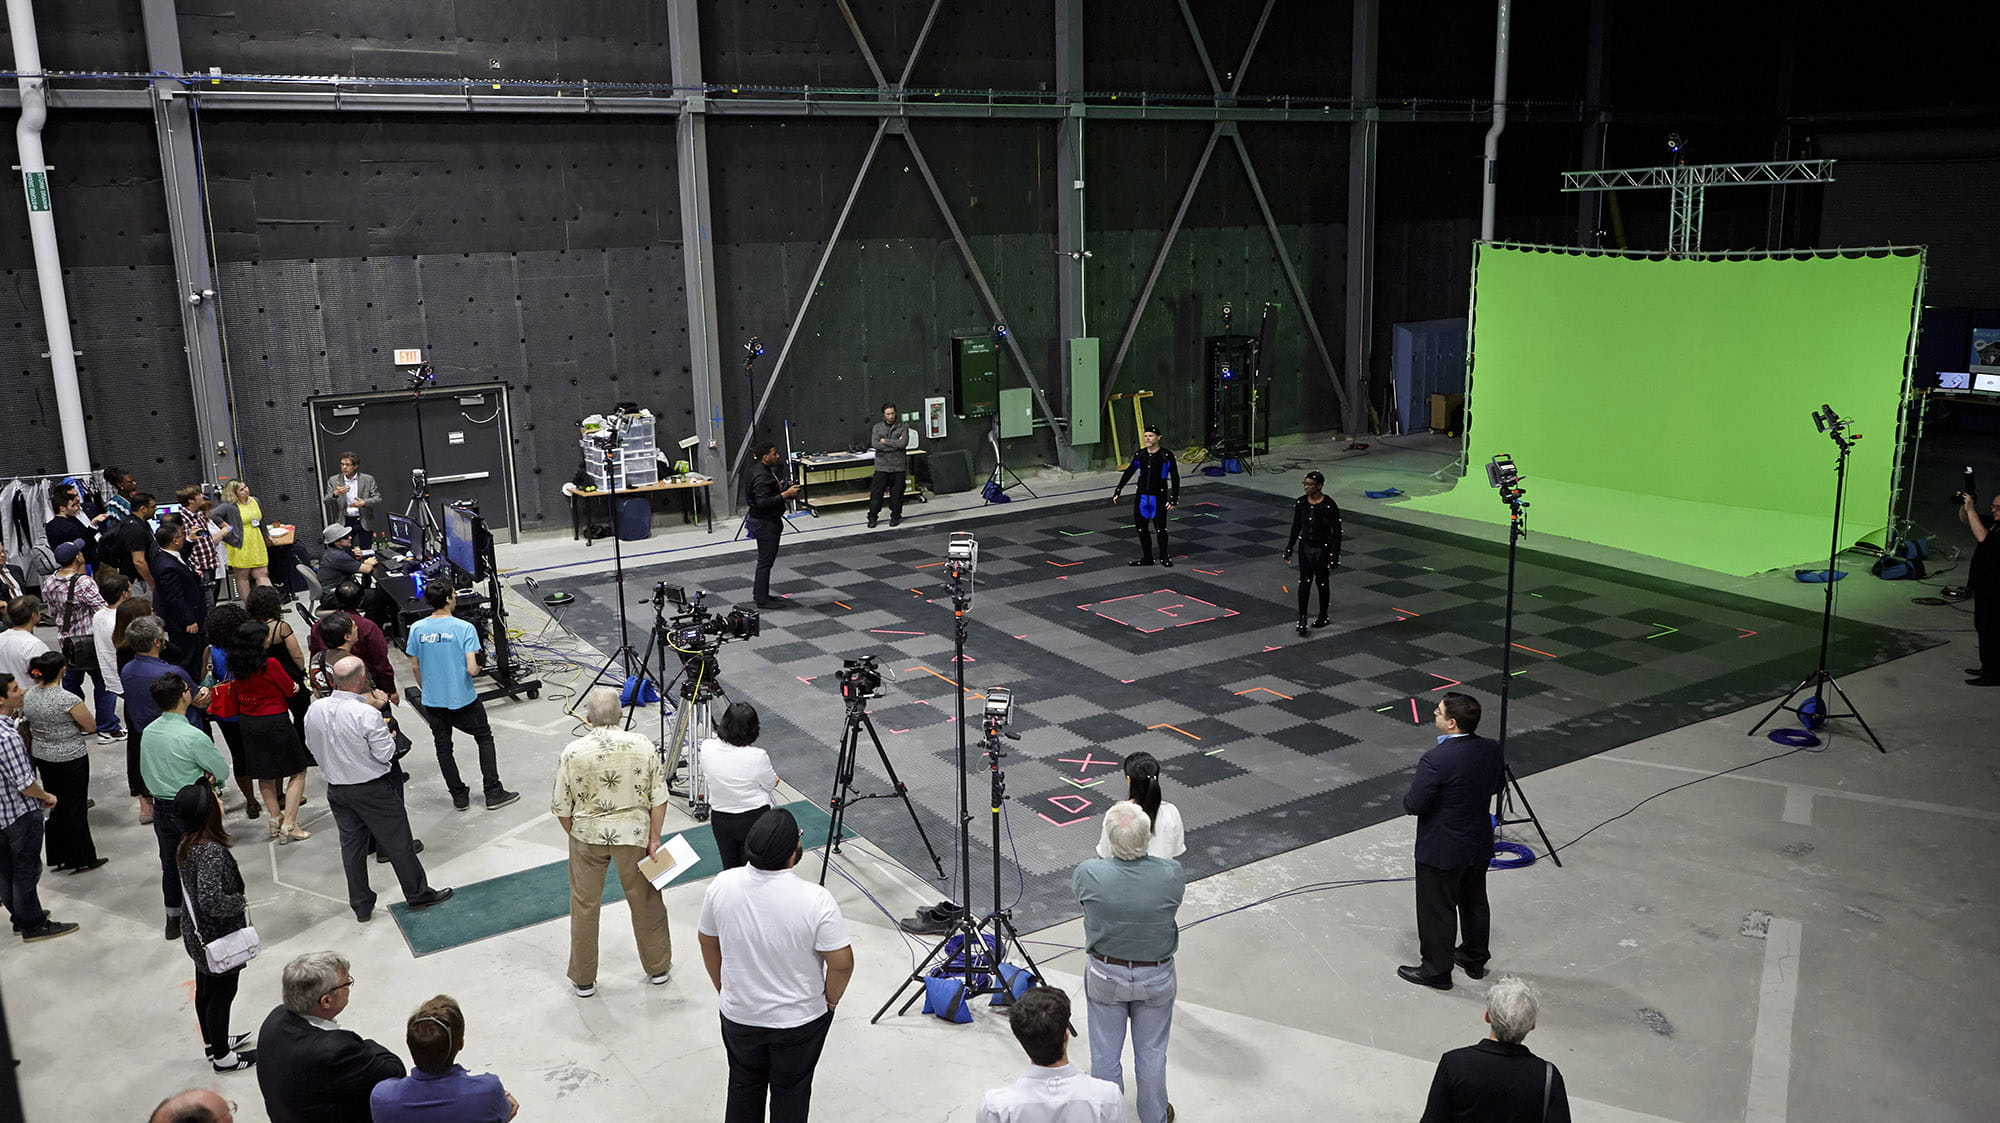 A large studio filled with a production crew, cameras, lights, and a green screen